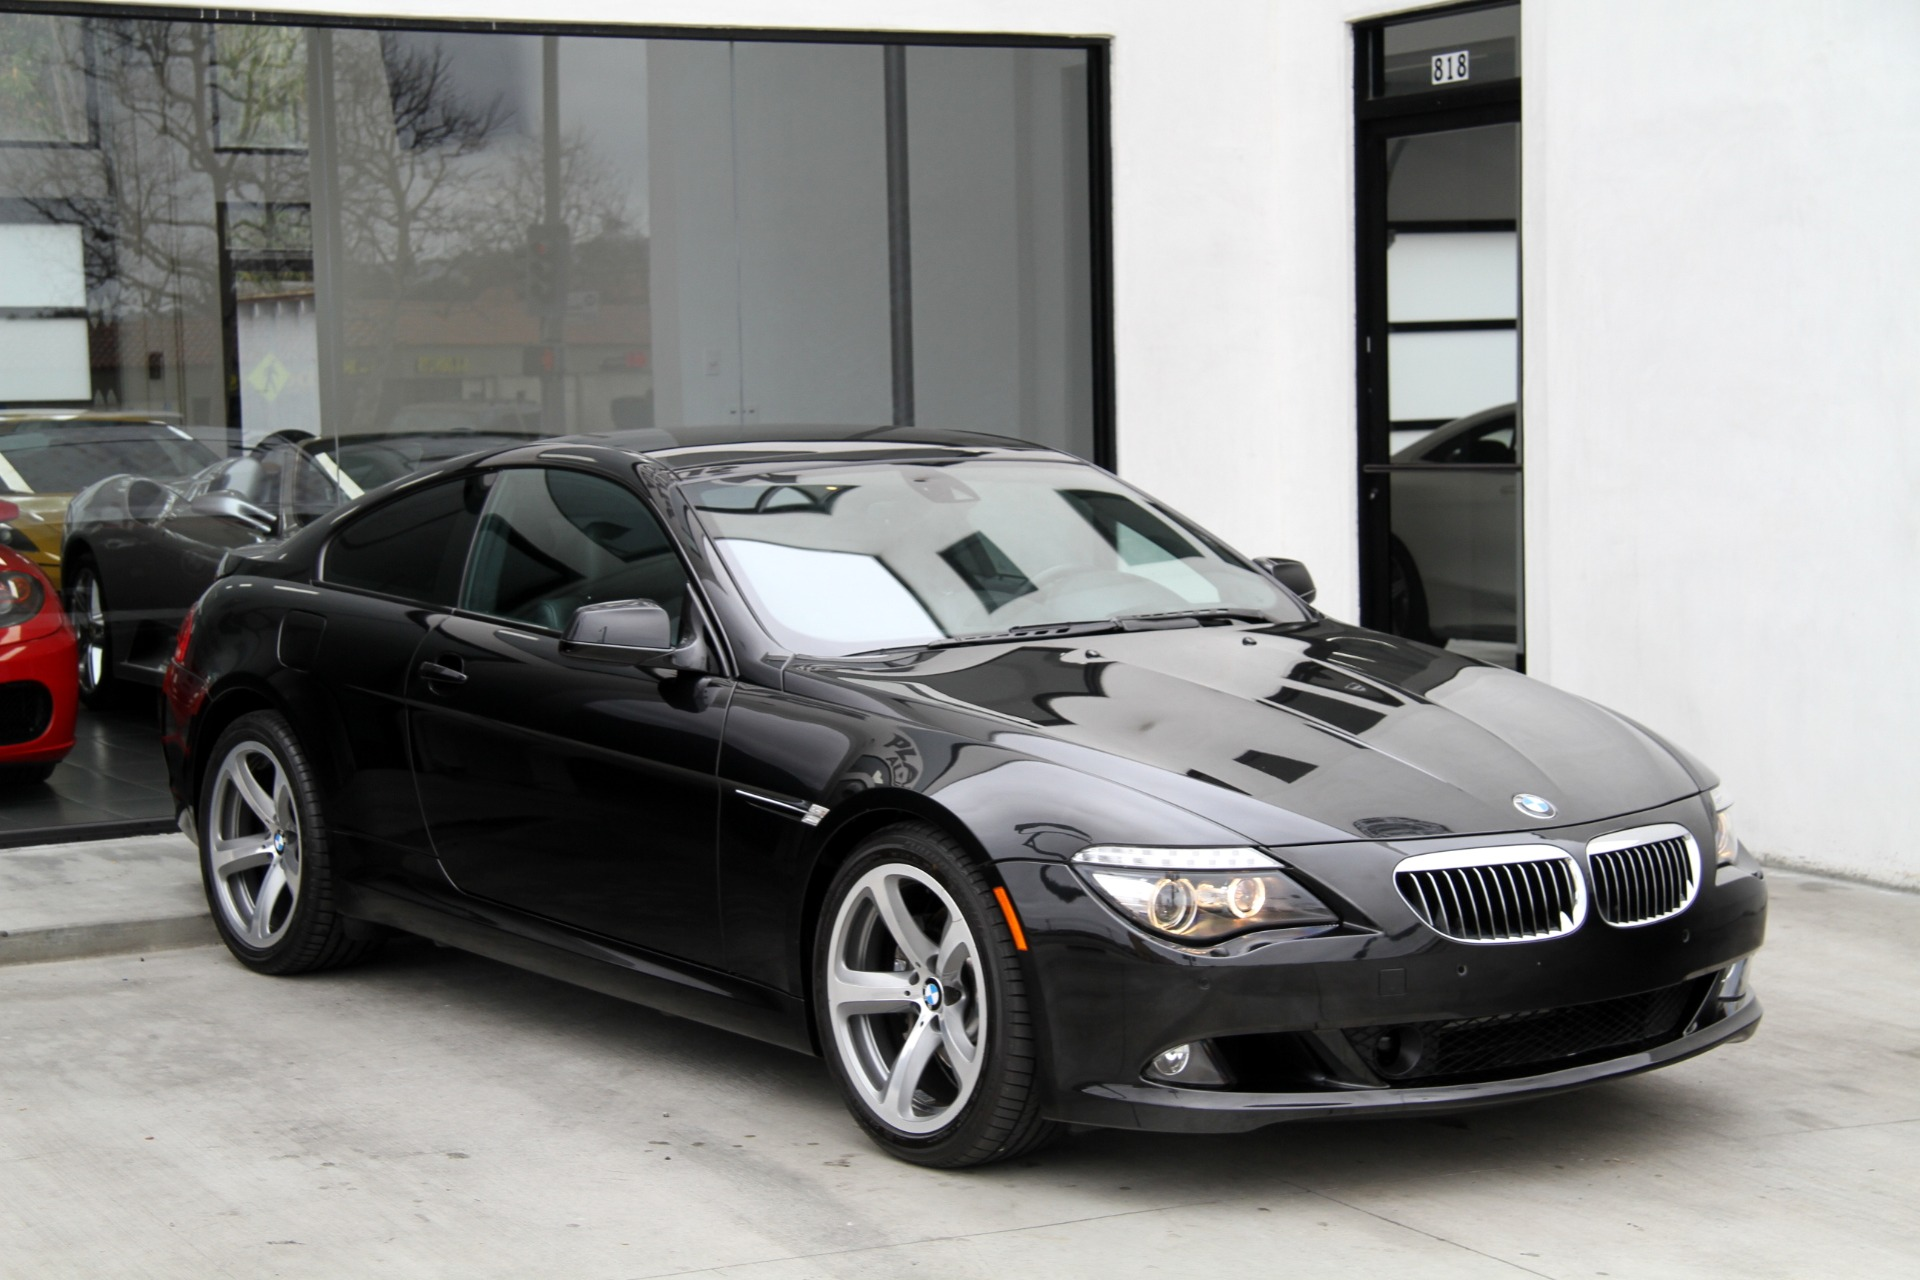 2010 Bmw 6 Series 650i Stock 6077 For Sale Near Redondo